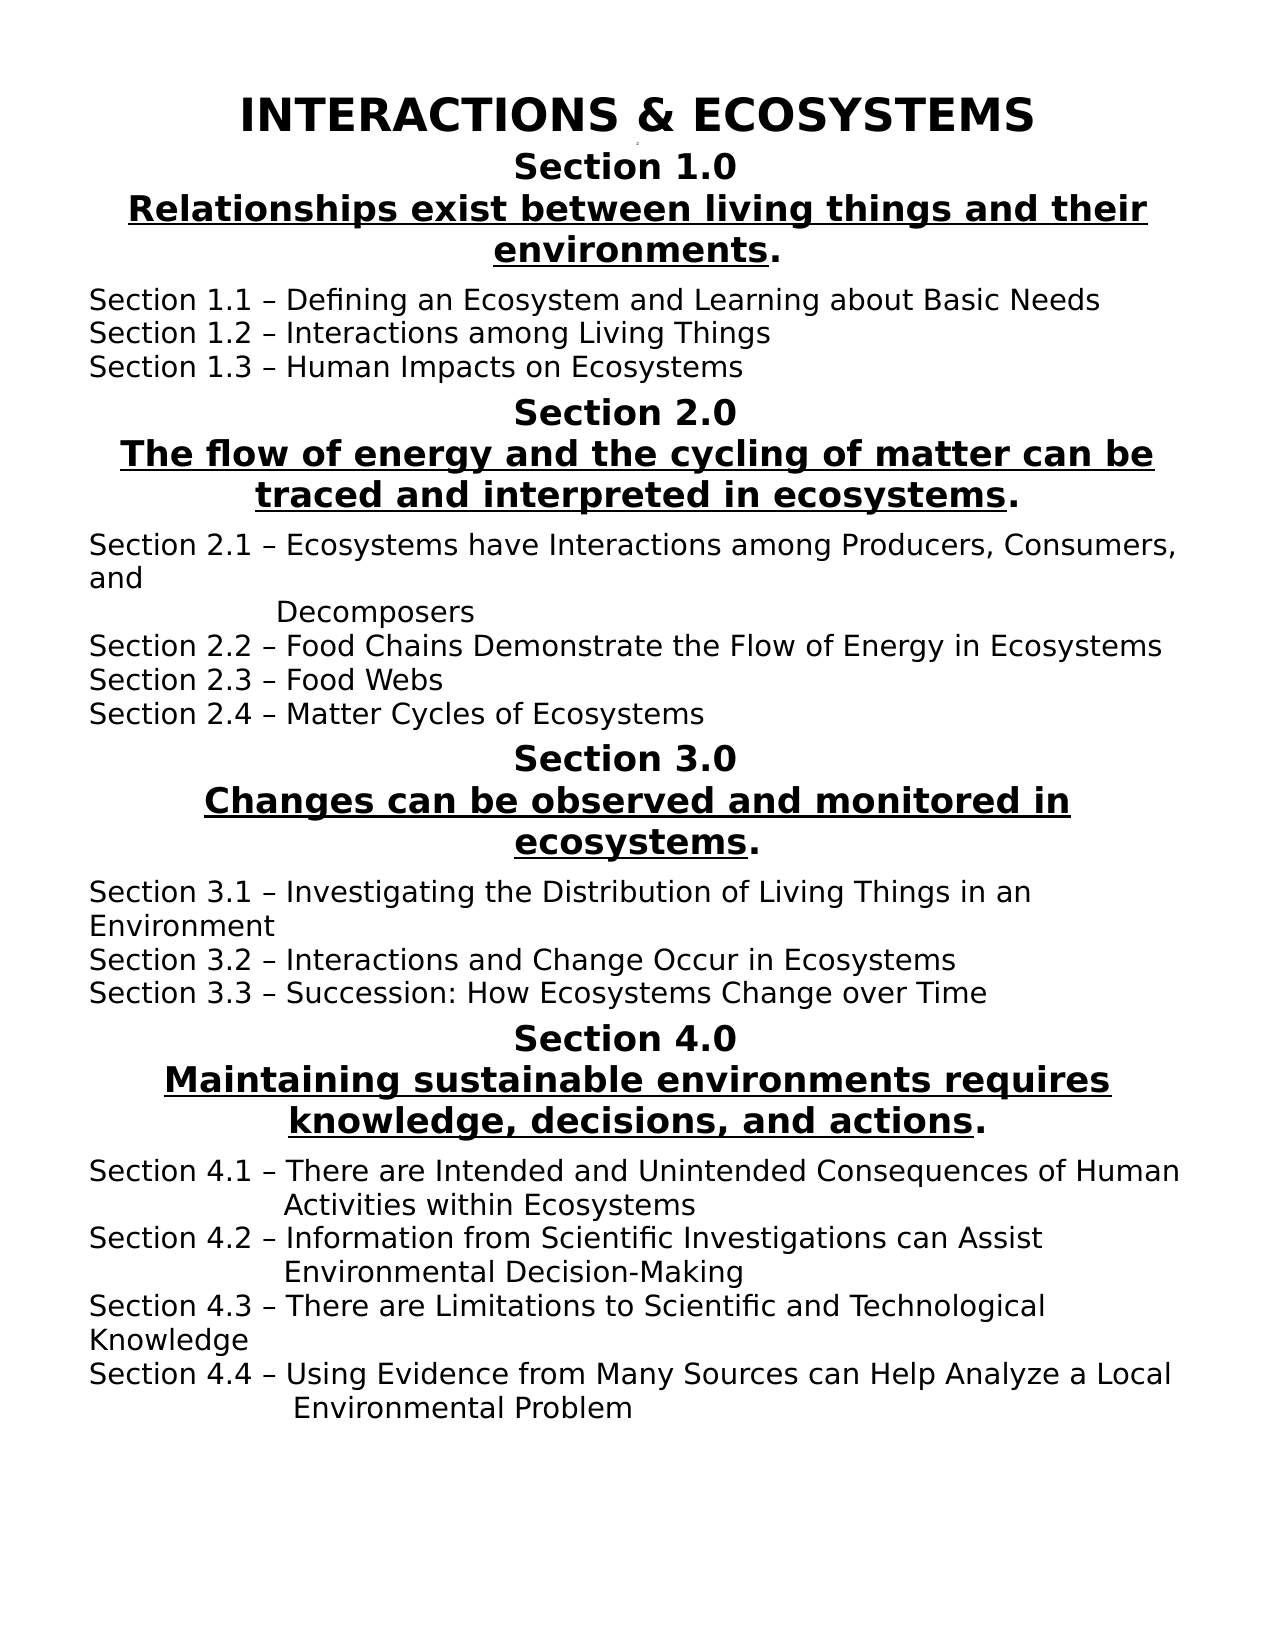 Science 7 Interactions And Ecosystems Unit And Lesson Plans Resource Preview